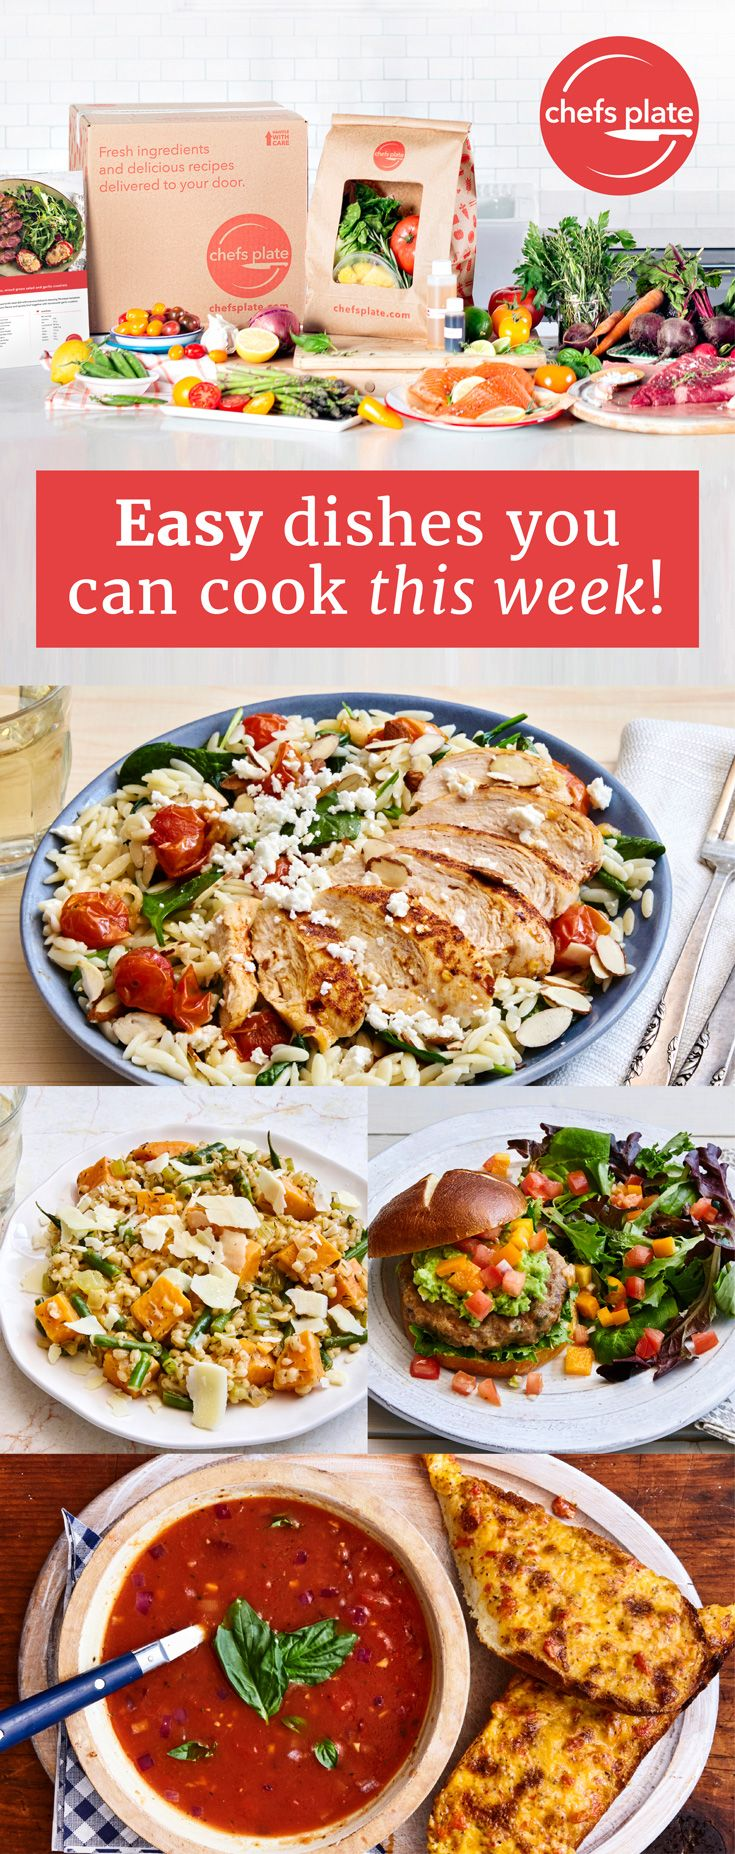 7 Exciting New Recipes Every Week!